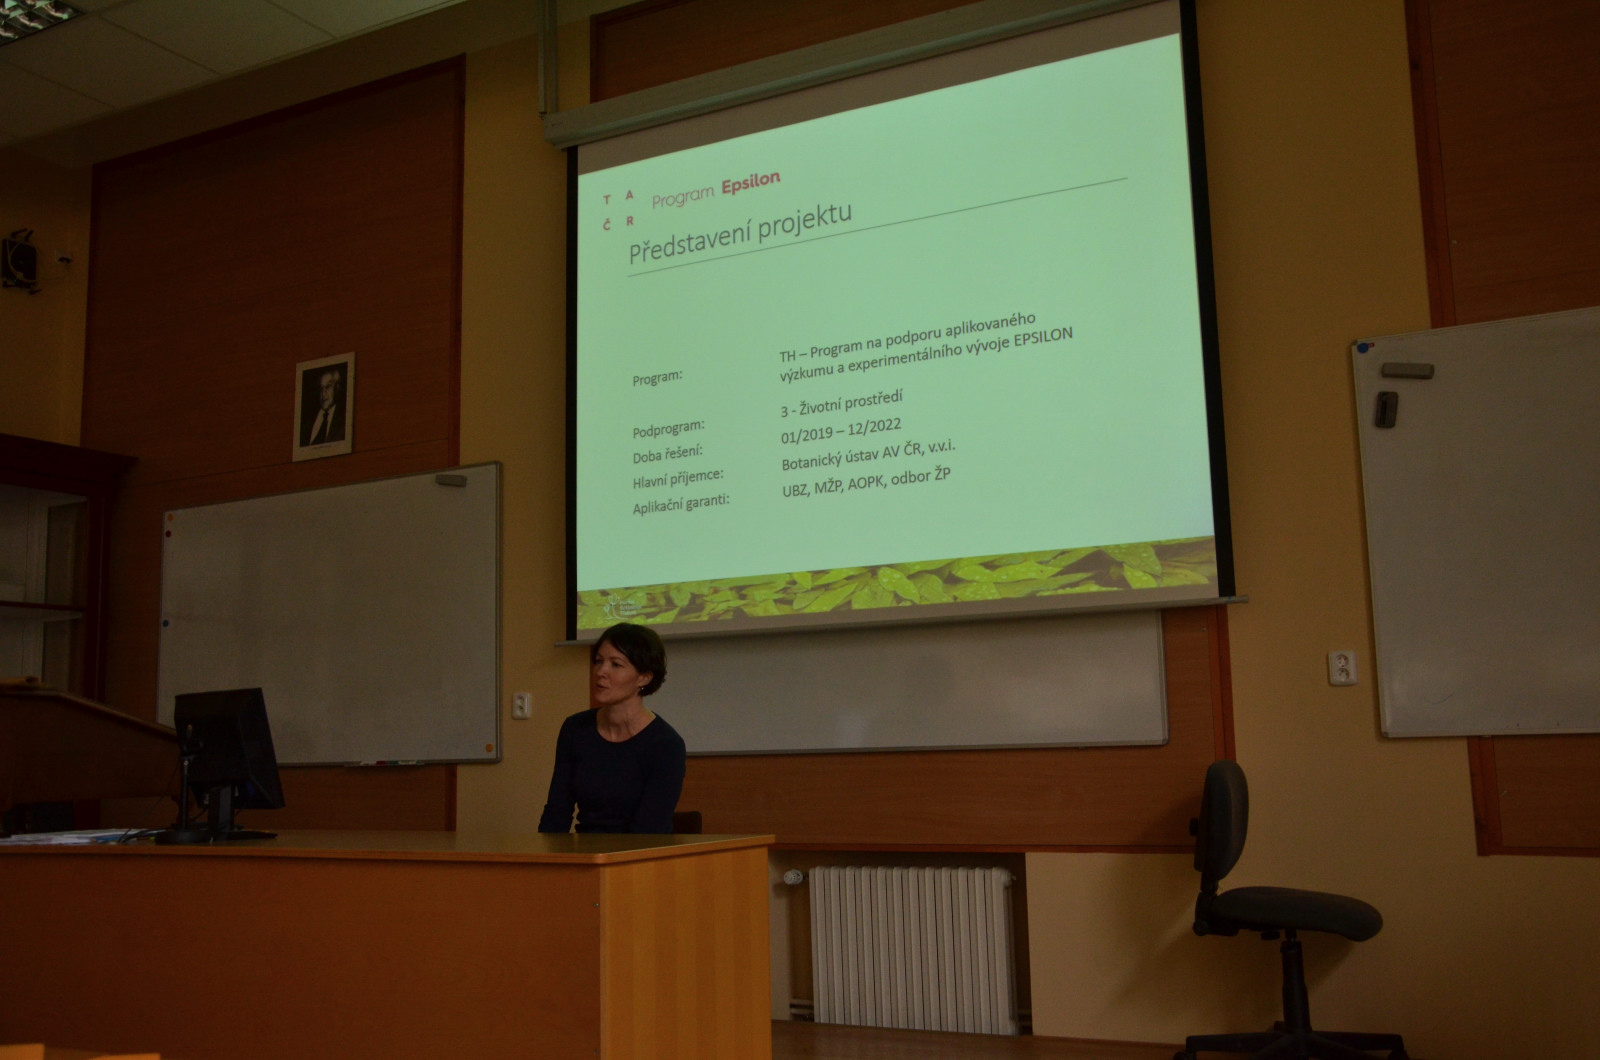 Presentation of the TAČR Epsilon project at general meeting of Union of Botanical Gardens 2019